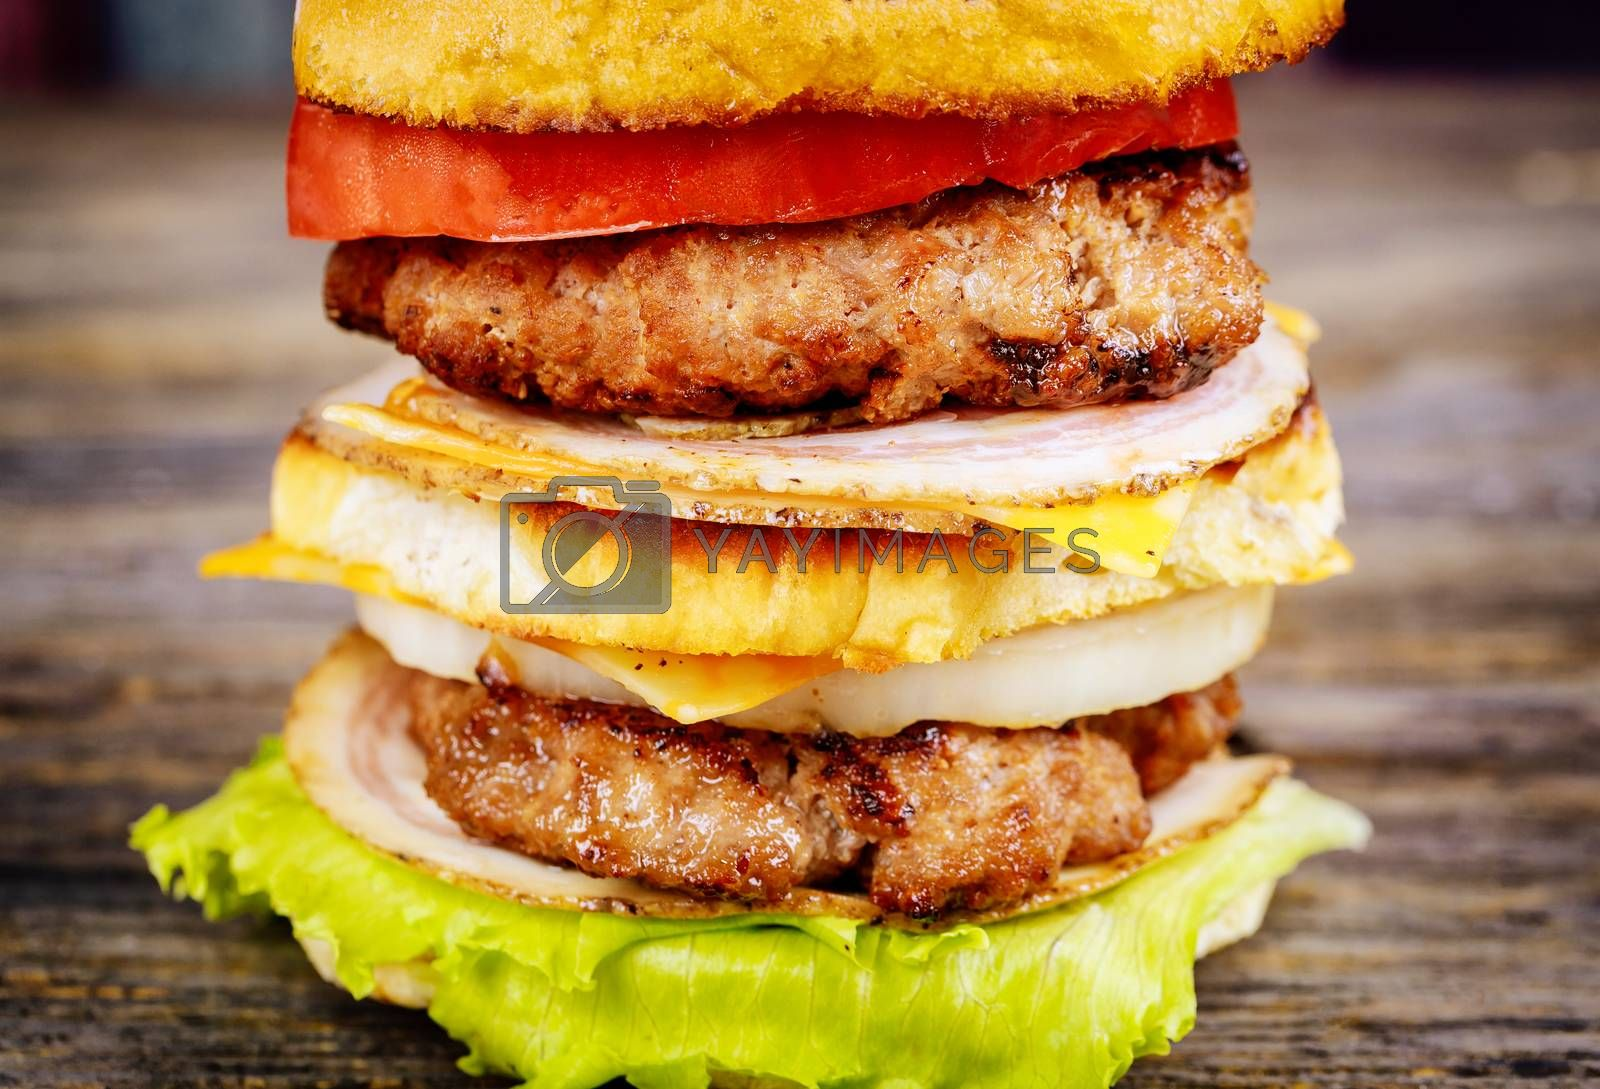 Beef burger, hamburger with grilled meat and vegetables